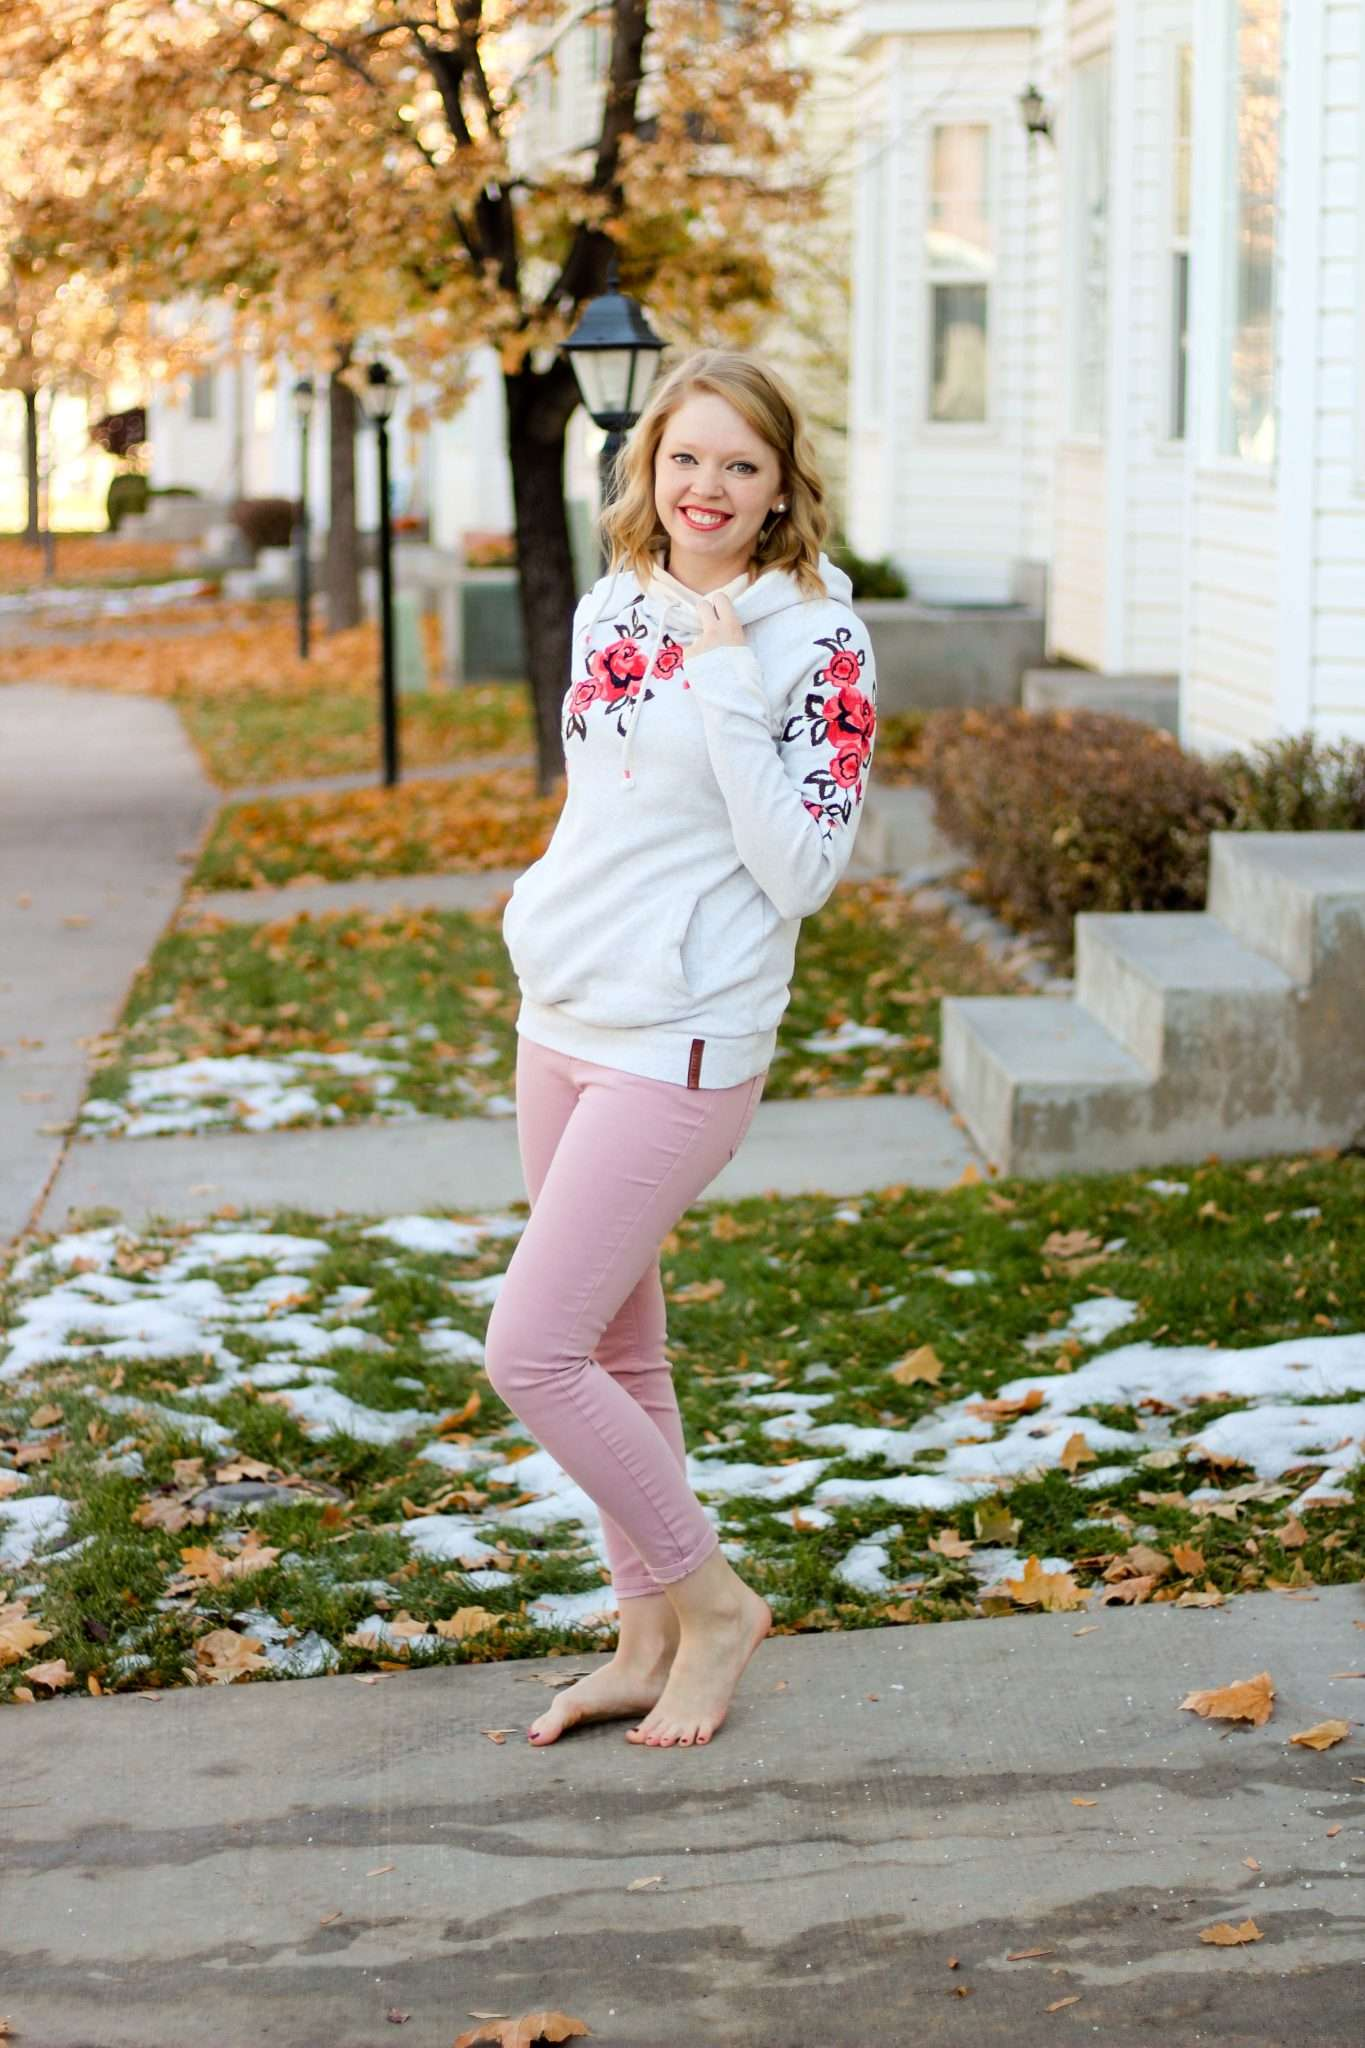 Cute Comfy Casual Outfit Idea for What to Wear At Home Around the House - Color pink pants and cute casual hoodie, easy outfit for spring